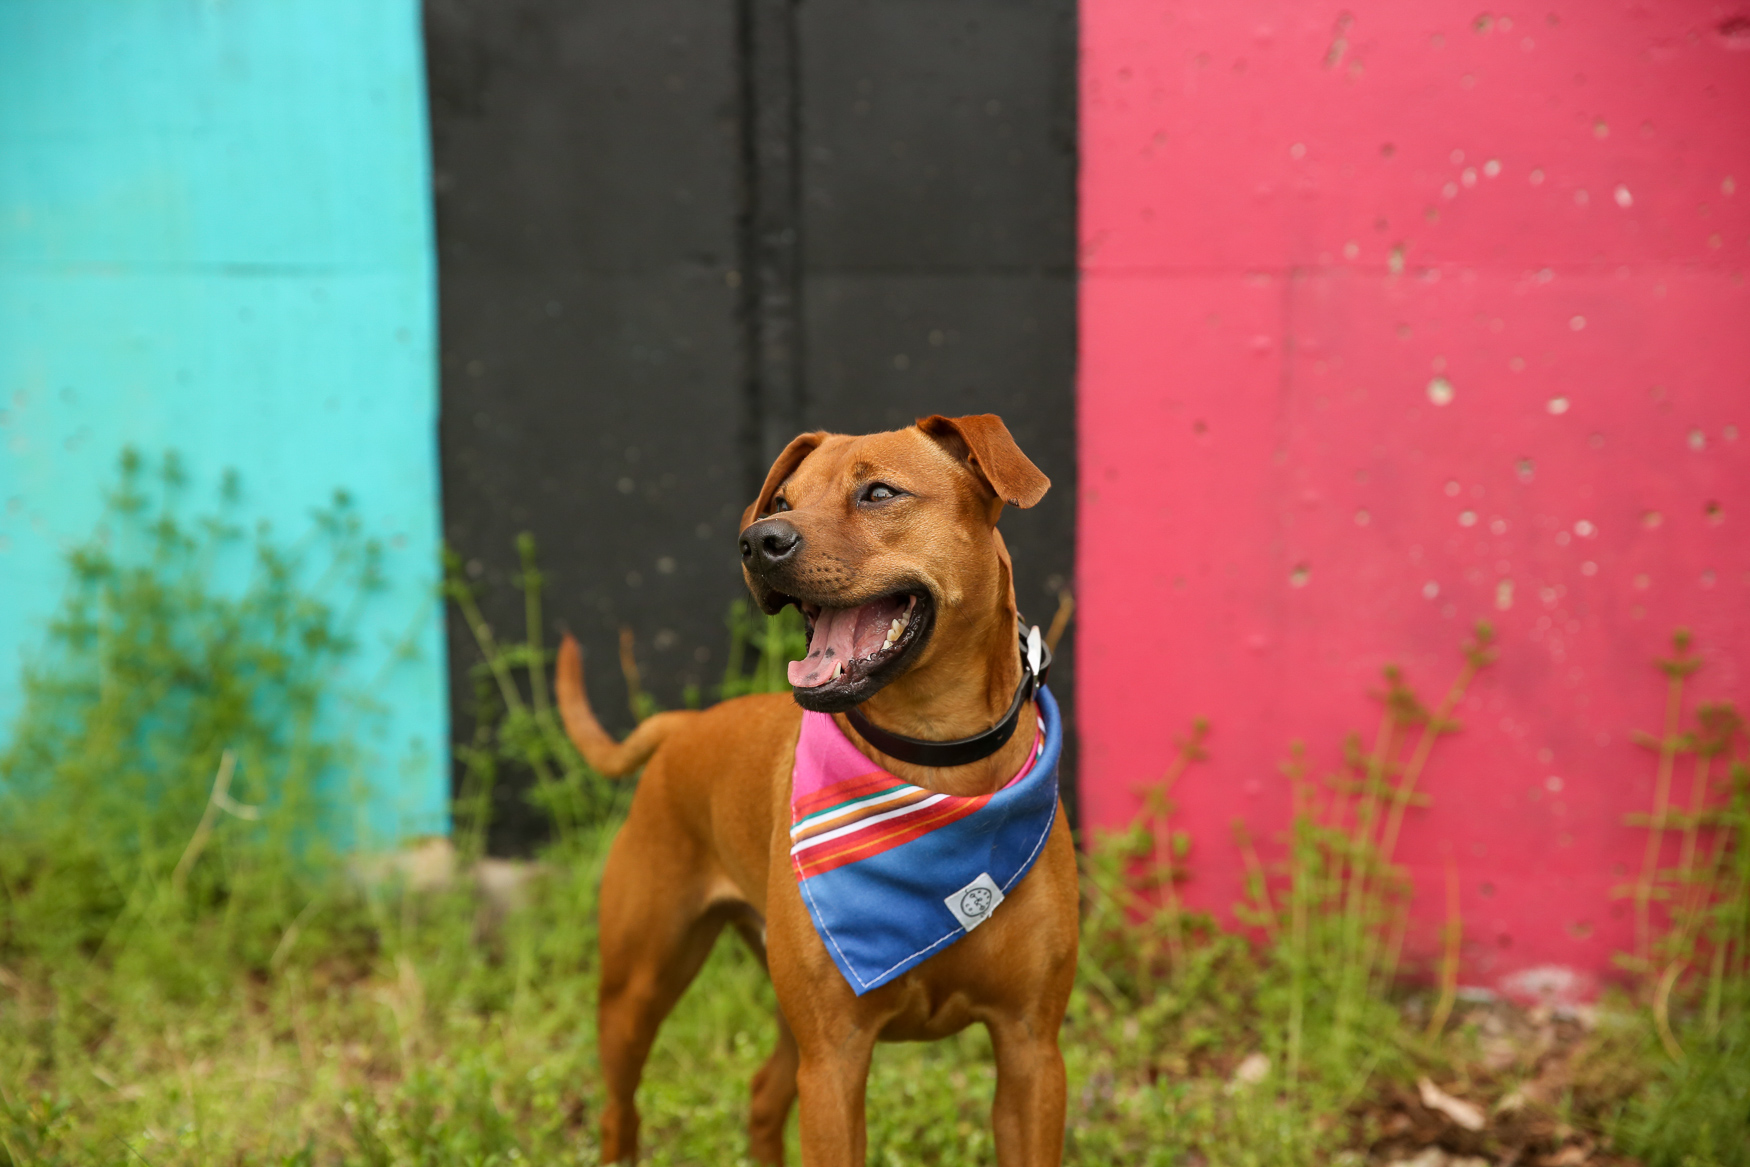 Meet Herbert, a two-year-old mutt! His doggie DNA test said he was 25 percent boxer, 25 percent jack russell, 12.5 percent chihuahua, 12.5 percent miniature schnauzer, 12 percent terrier/pitt and 12 percent mixed/sporting breed. Herbert was adopted form Homeward Trails in August 2017, about a month after his family's beloved cat, Dame Judi Dench, passed away. Herbert loves goldfish crackers, the neighbor dog Howard (his best friend), sleeping in a bed with his head on a pillow like a human, walks, eviscerating any soft toy in minutes and life in general. He dislikes when his human leaves the house, umbrellas, baths and metal grates/manhole covers. When Herbert smiles he wrinkles his face, closes his eyes and shows his teeth. It may look like he's growling, but that is his smile believe it or not! He is also happy to sit and give you high fives! If you're interested in having your pup featured, drop us a line at aandrade@dcrefined.com, but we do have quite the waiting list right now so we appreciate your patience! (Image: Amanda Andrade-Rhoades/DC Refined)